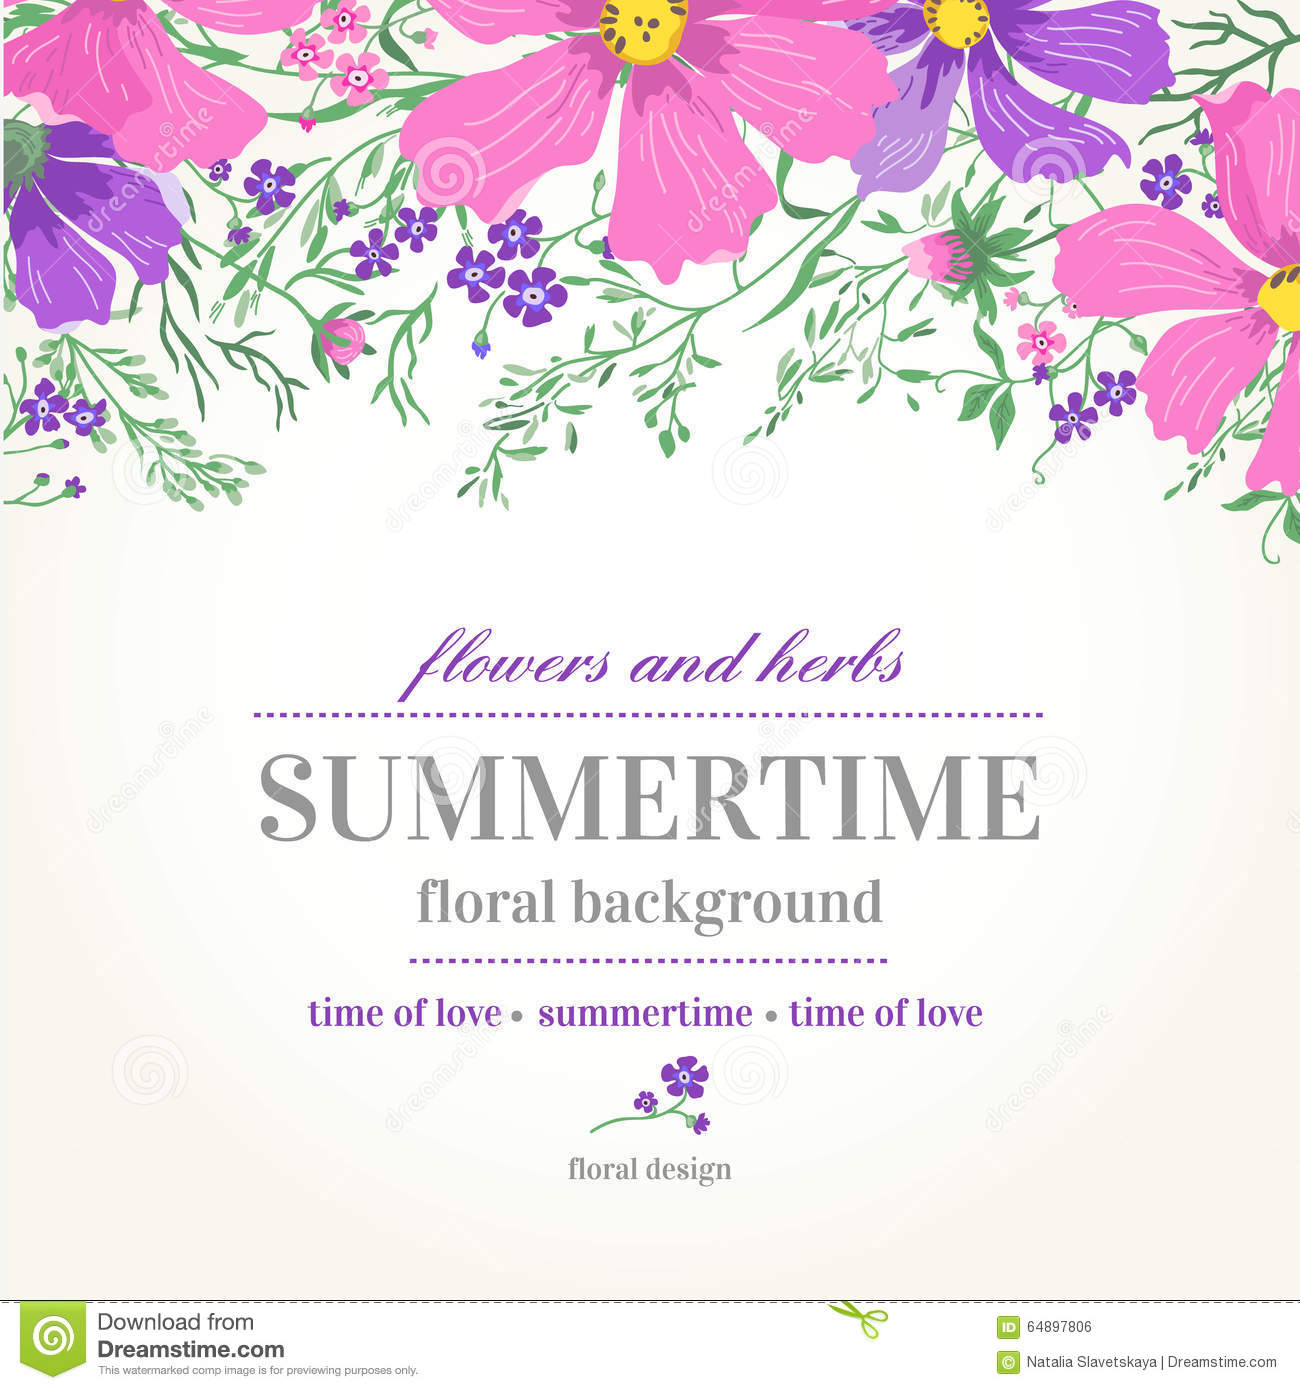 Download Pink Flower Wedding Vector Invitation Flowers: Vector Wedding Invitation And Background With Flowers